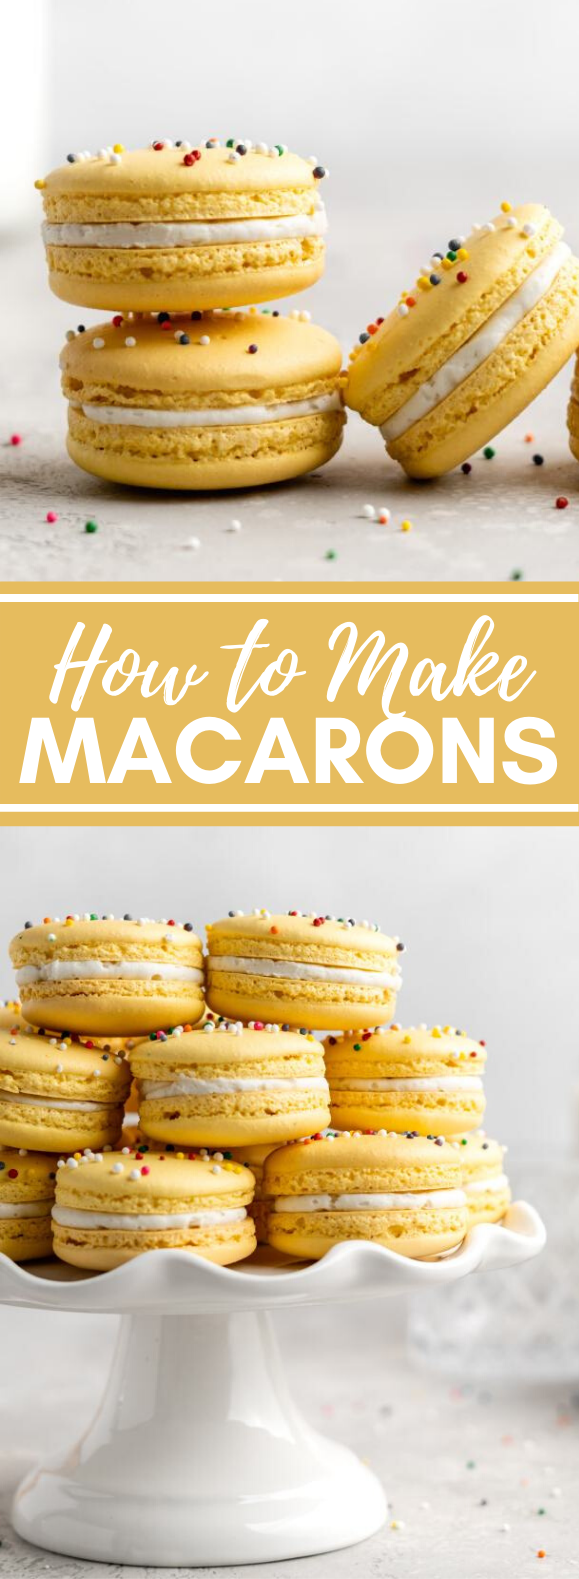 HOW TO MAKE MACARONS #desserts #cookies